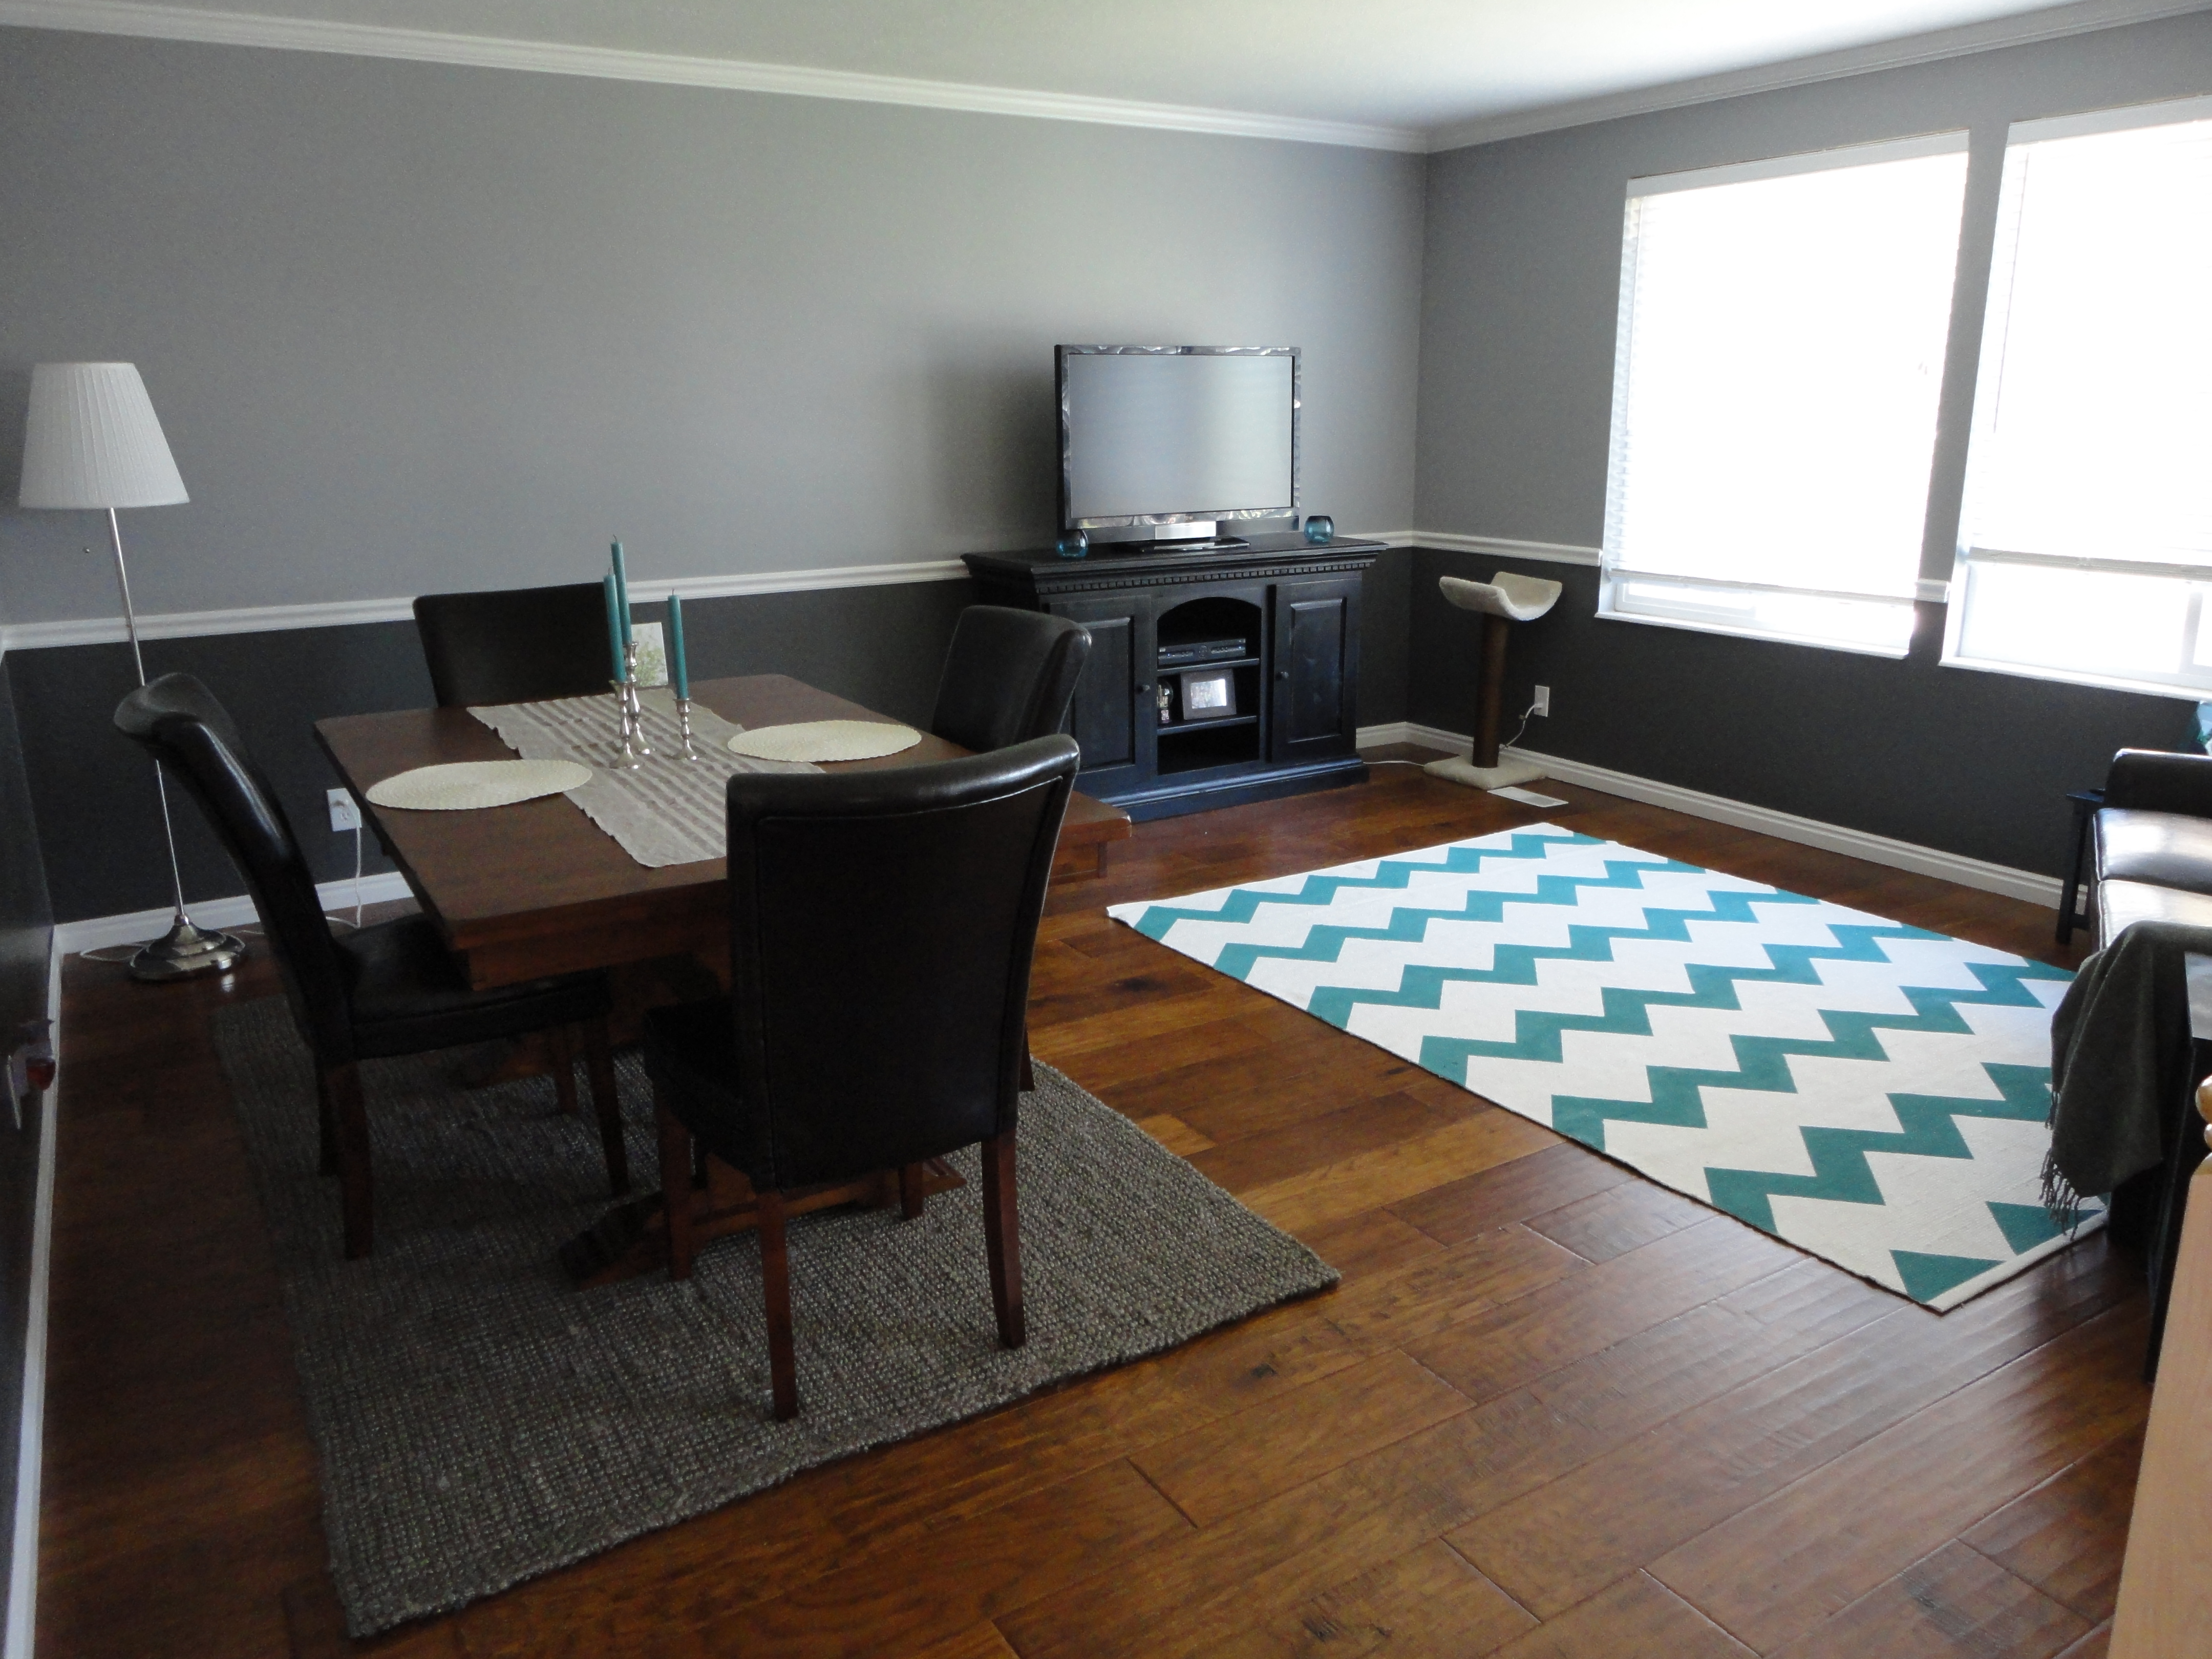 Braided Brown Rug For Open Space Apartment Dining Room Modern Decoration (View 14 of 15)